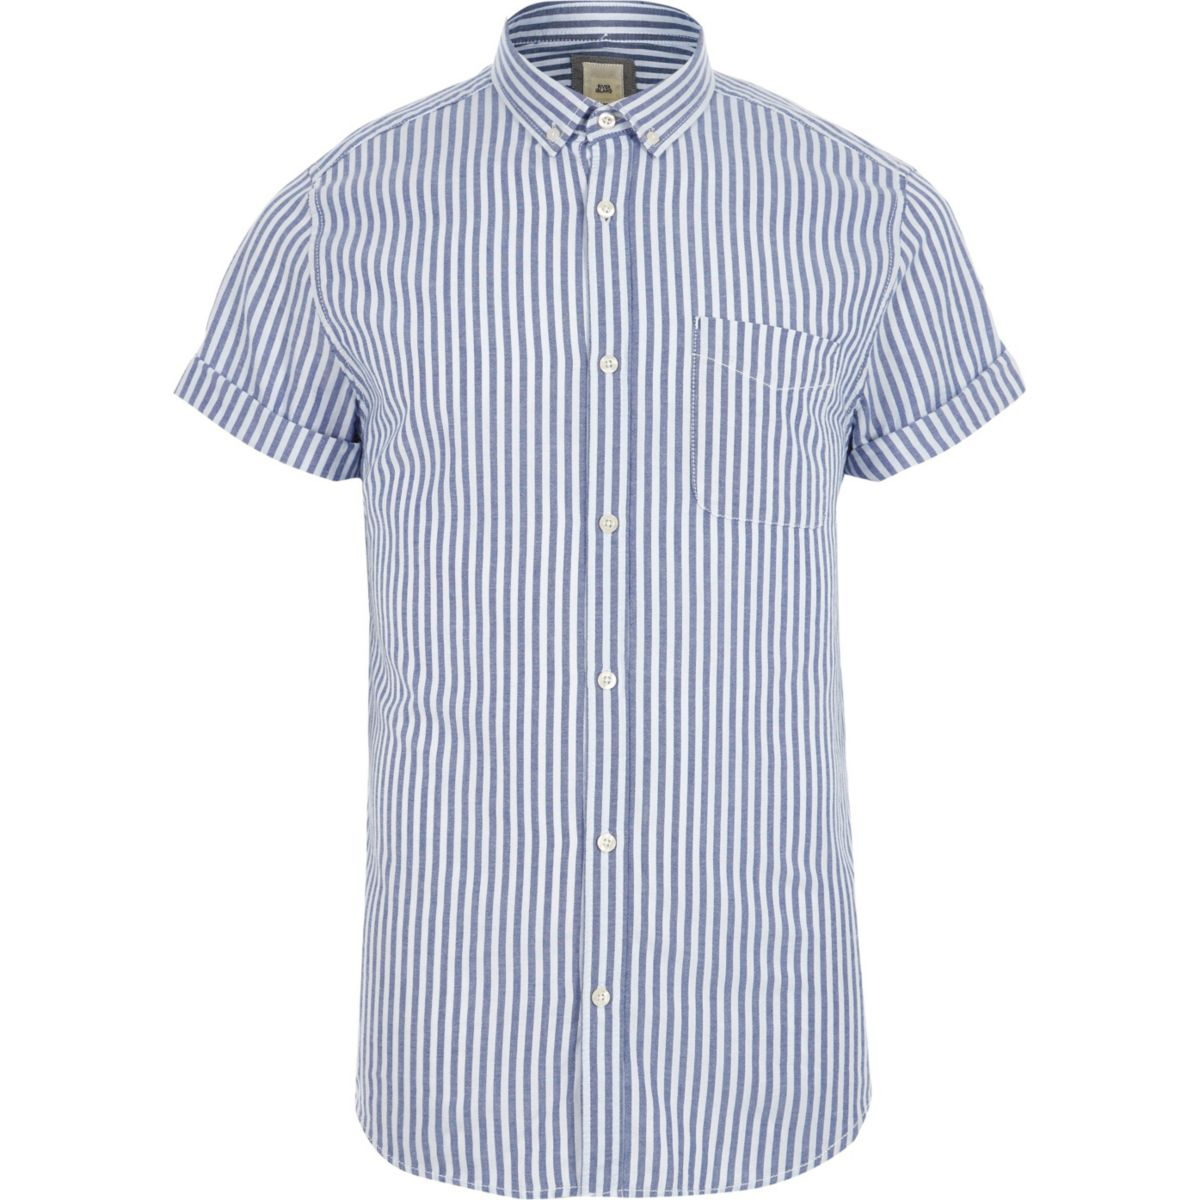 Blue stripe slim fit short sleeve shirt